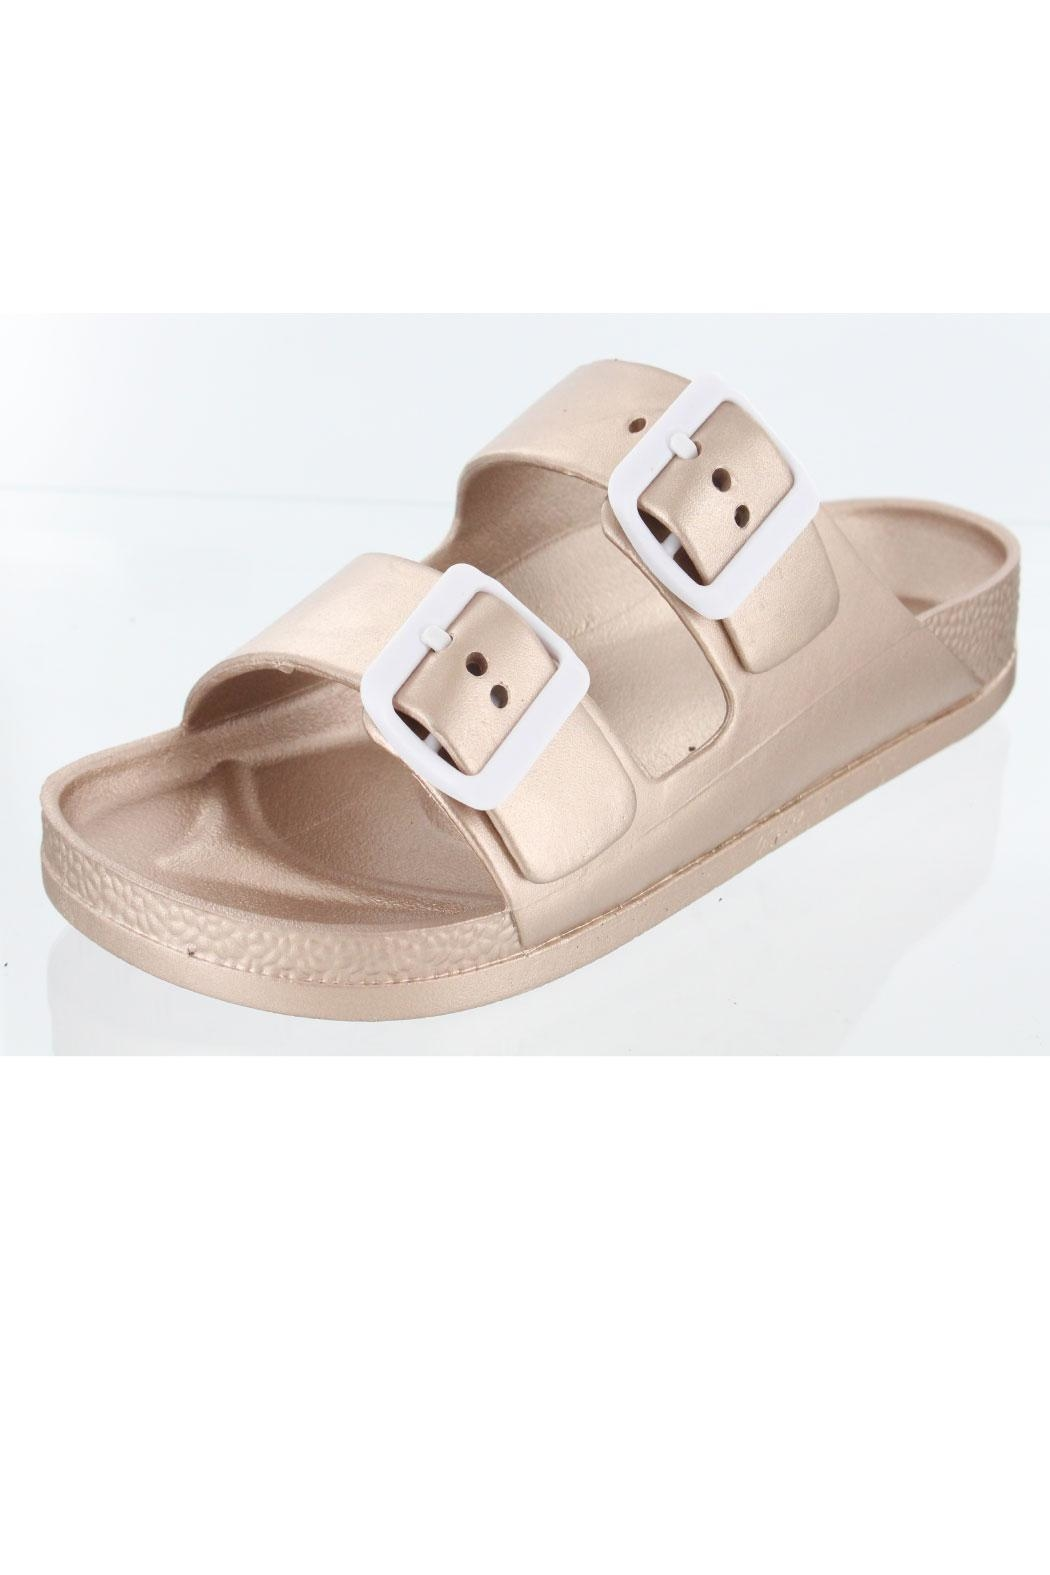 2b03383a53ac MIA Shoes Jasmin Slide Sandal from Wisconsin by ShoShoo — Shoptiques